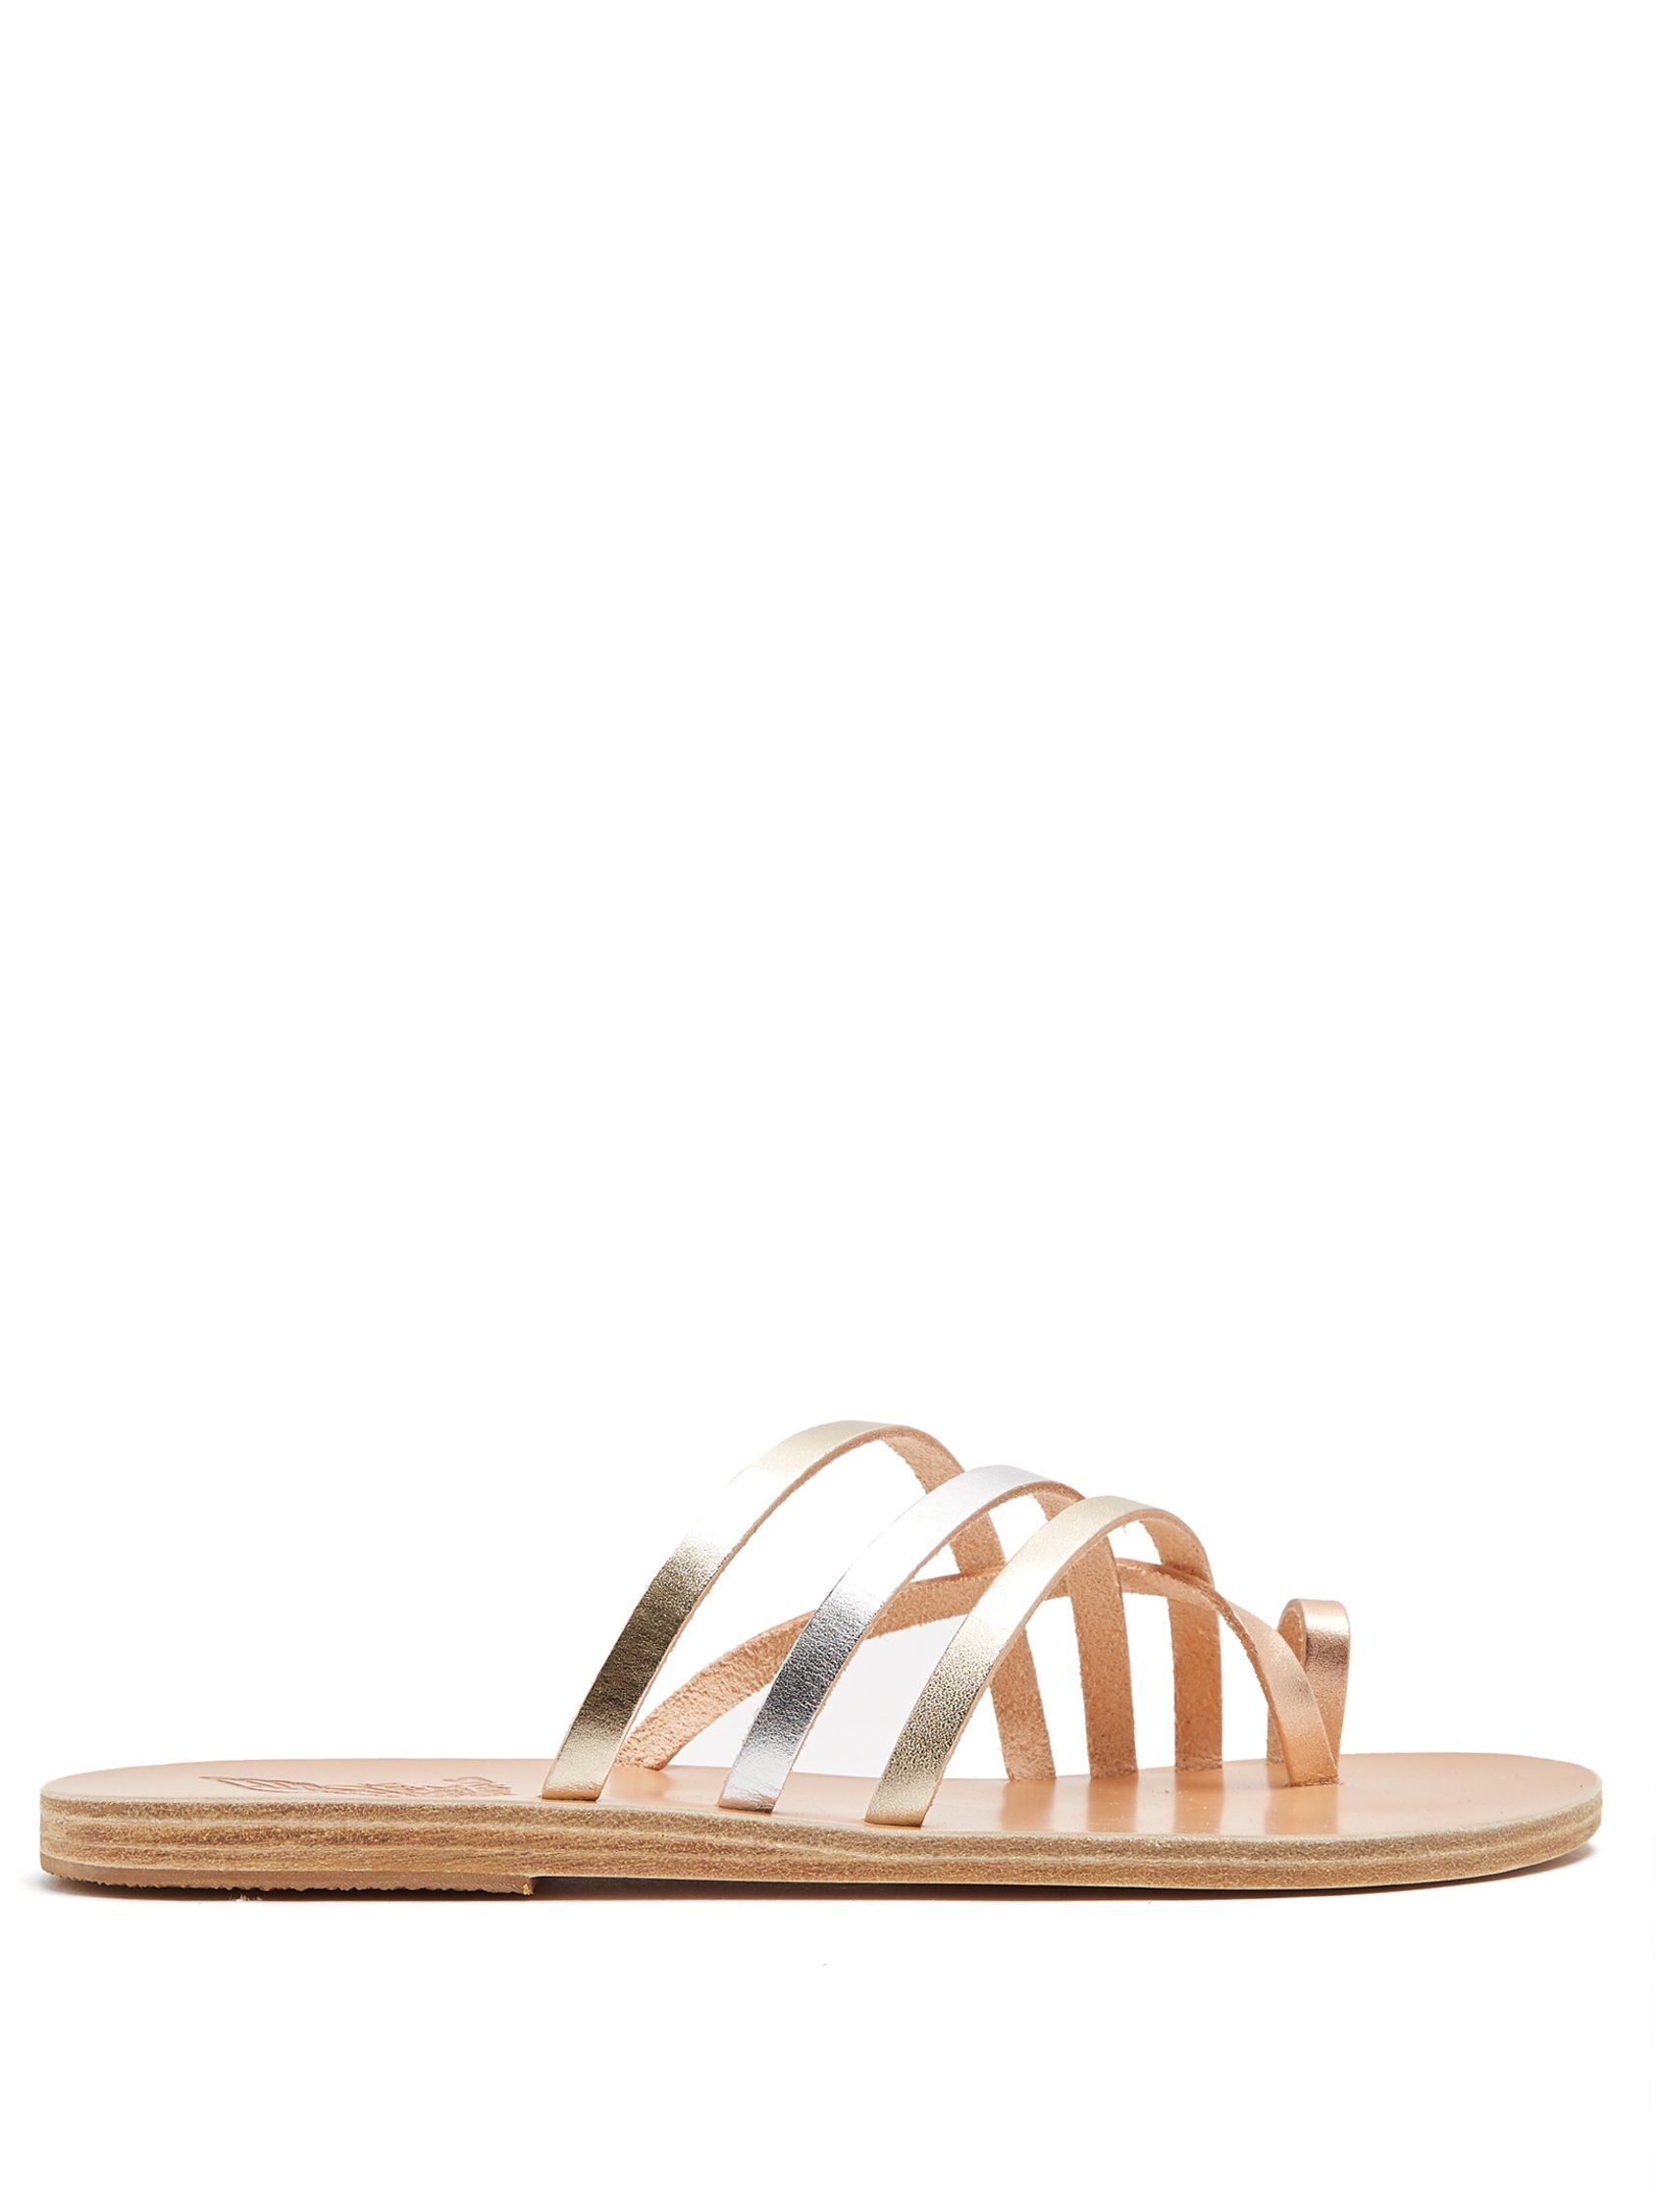 Purchase Discount Ancient Greek Sandals Apli Amalia Flat Sandals Exclusive Cheap Price Cheap Price Wholesale Price Sale Order 7PZCCw